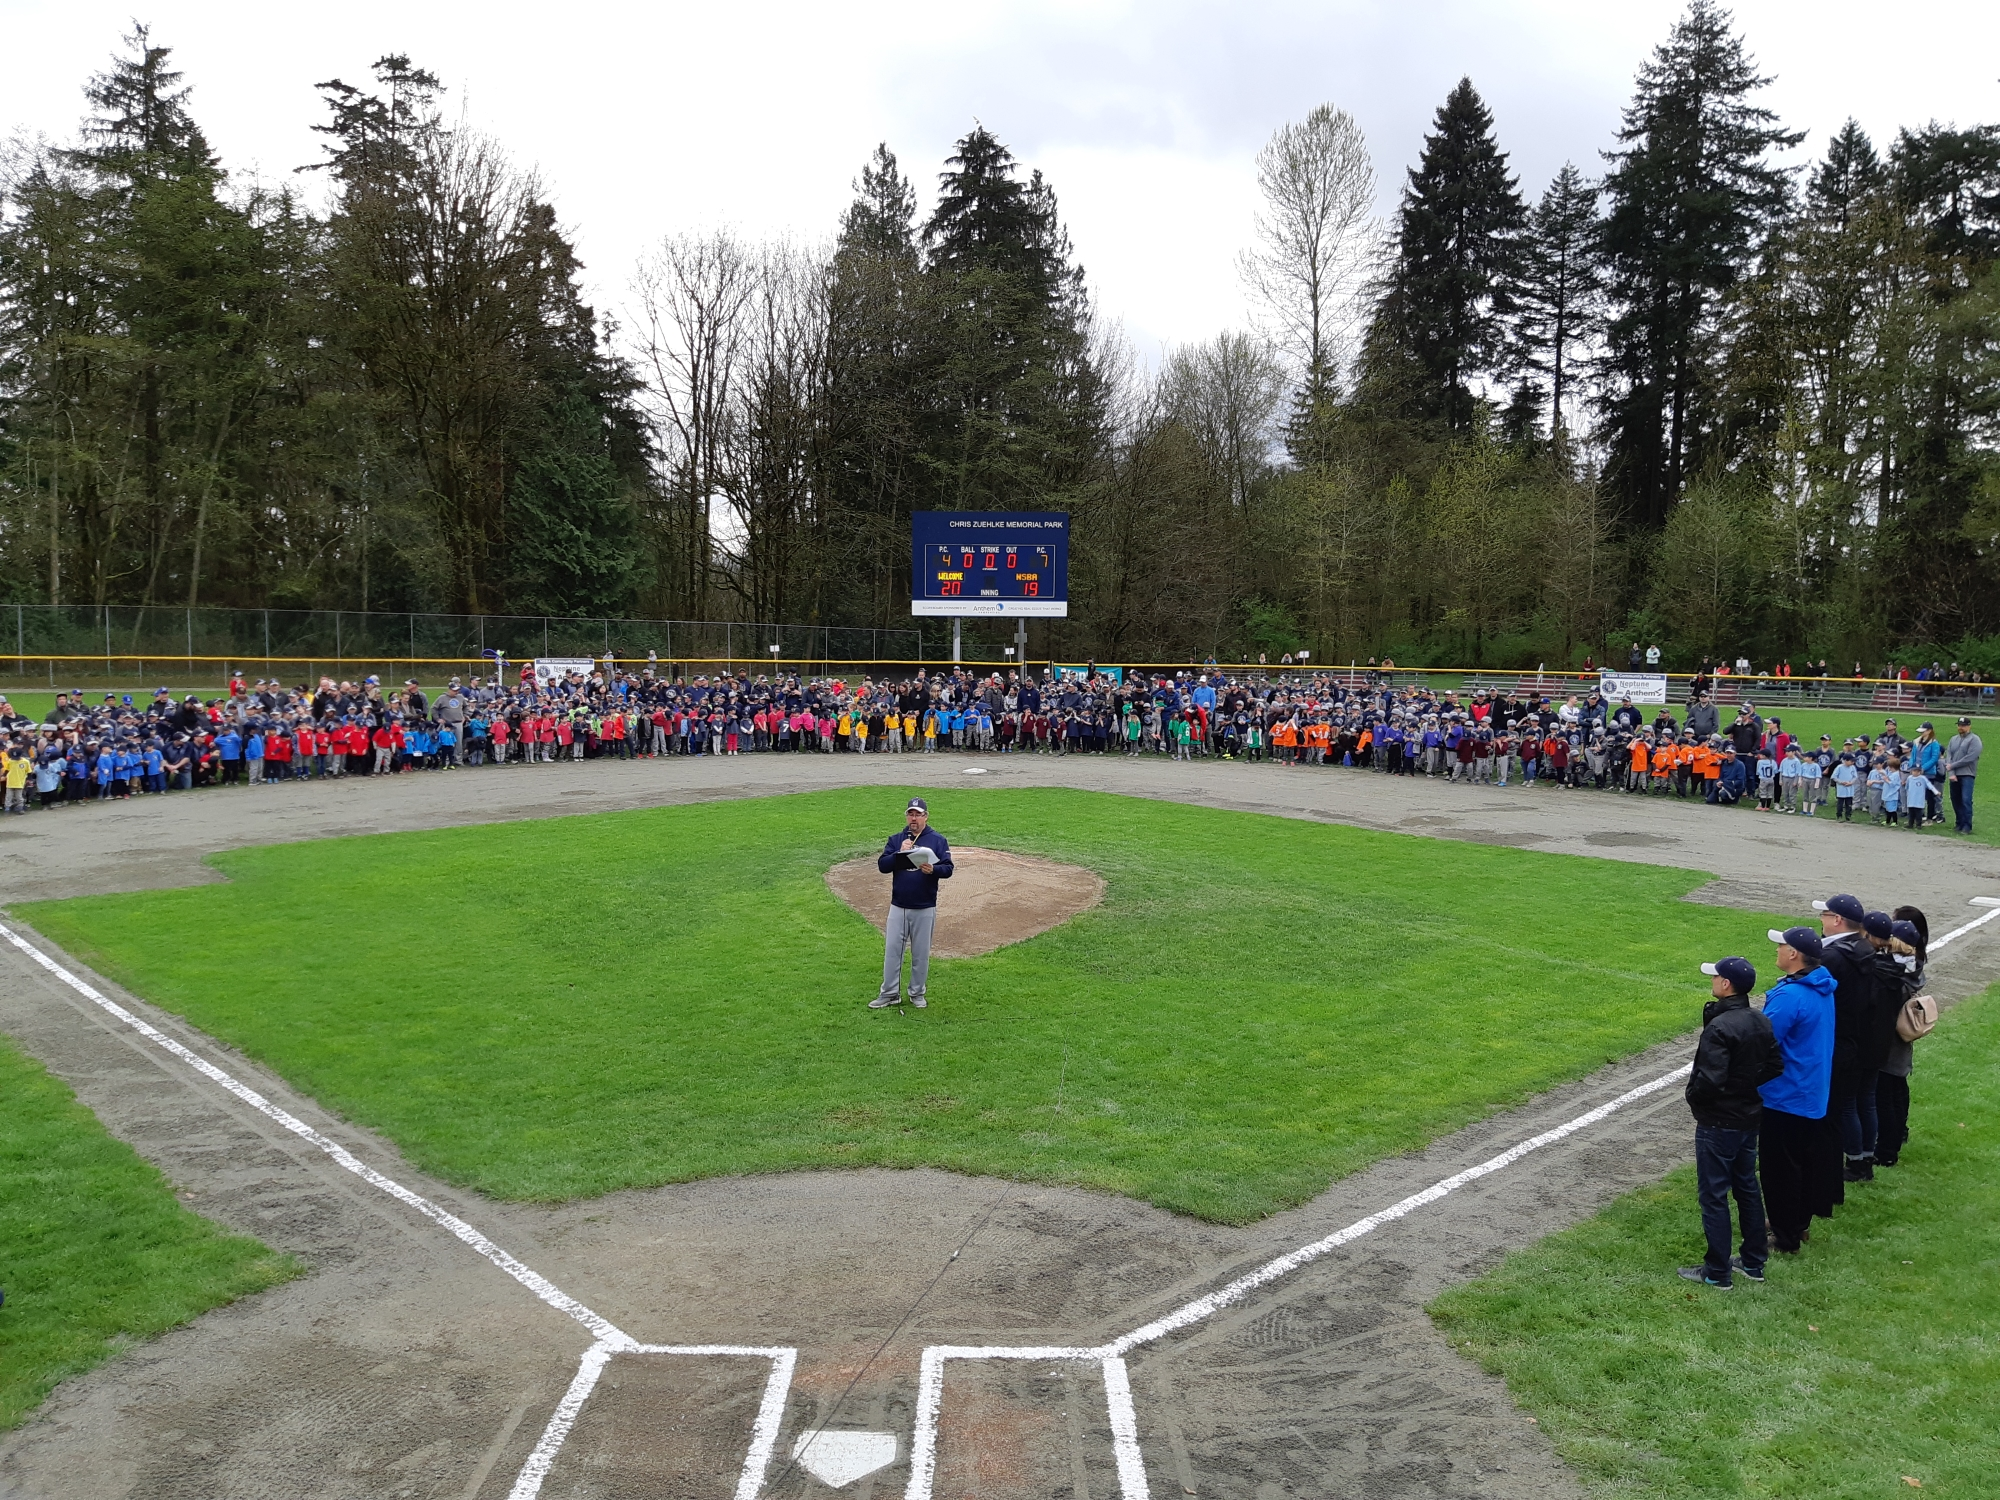 2019 Opening Day Ceremony